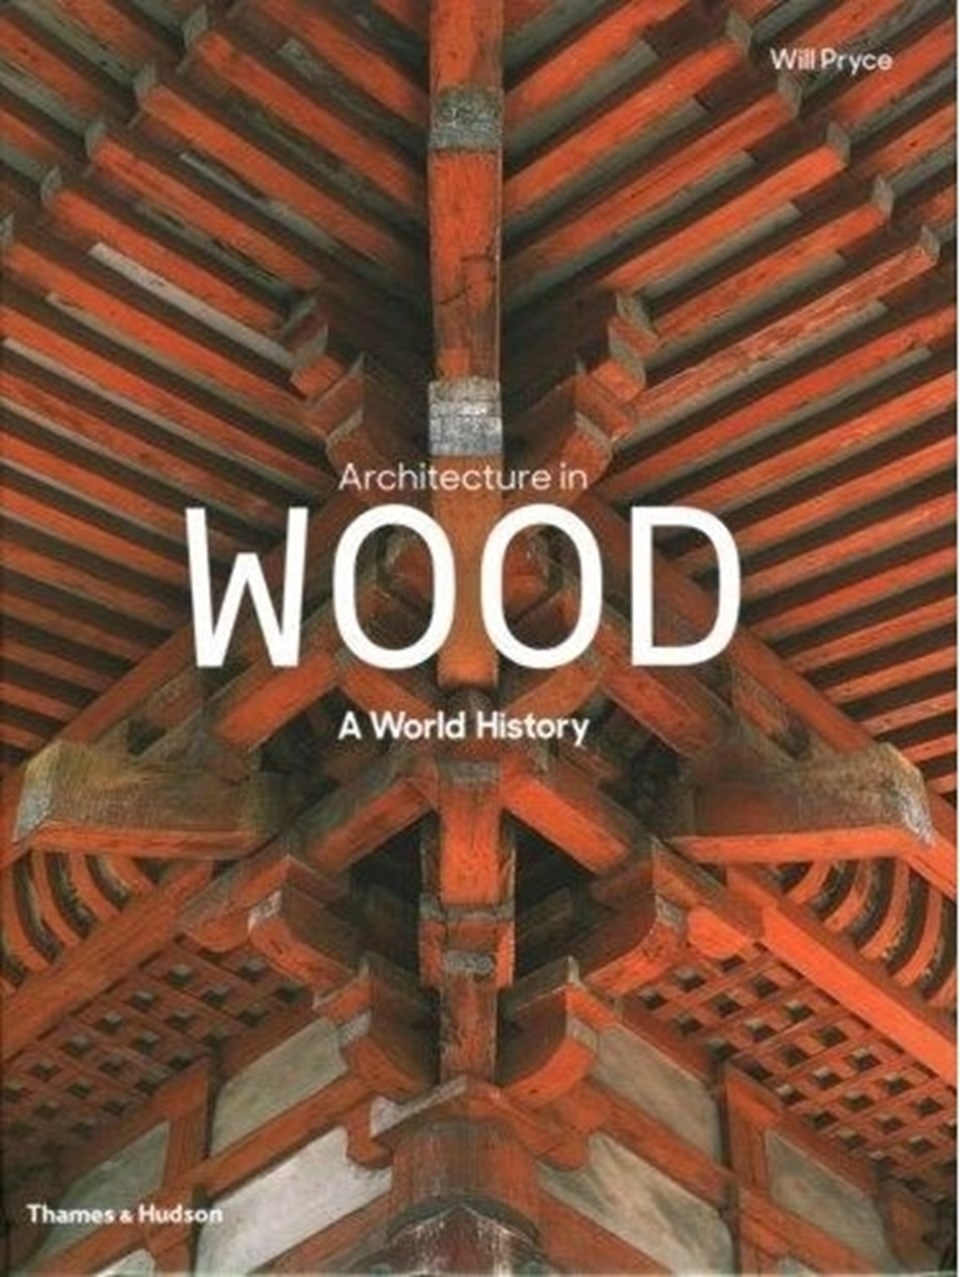 Architecture in Wood - A World History